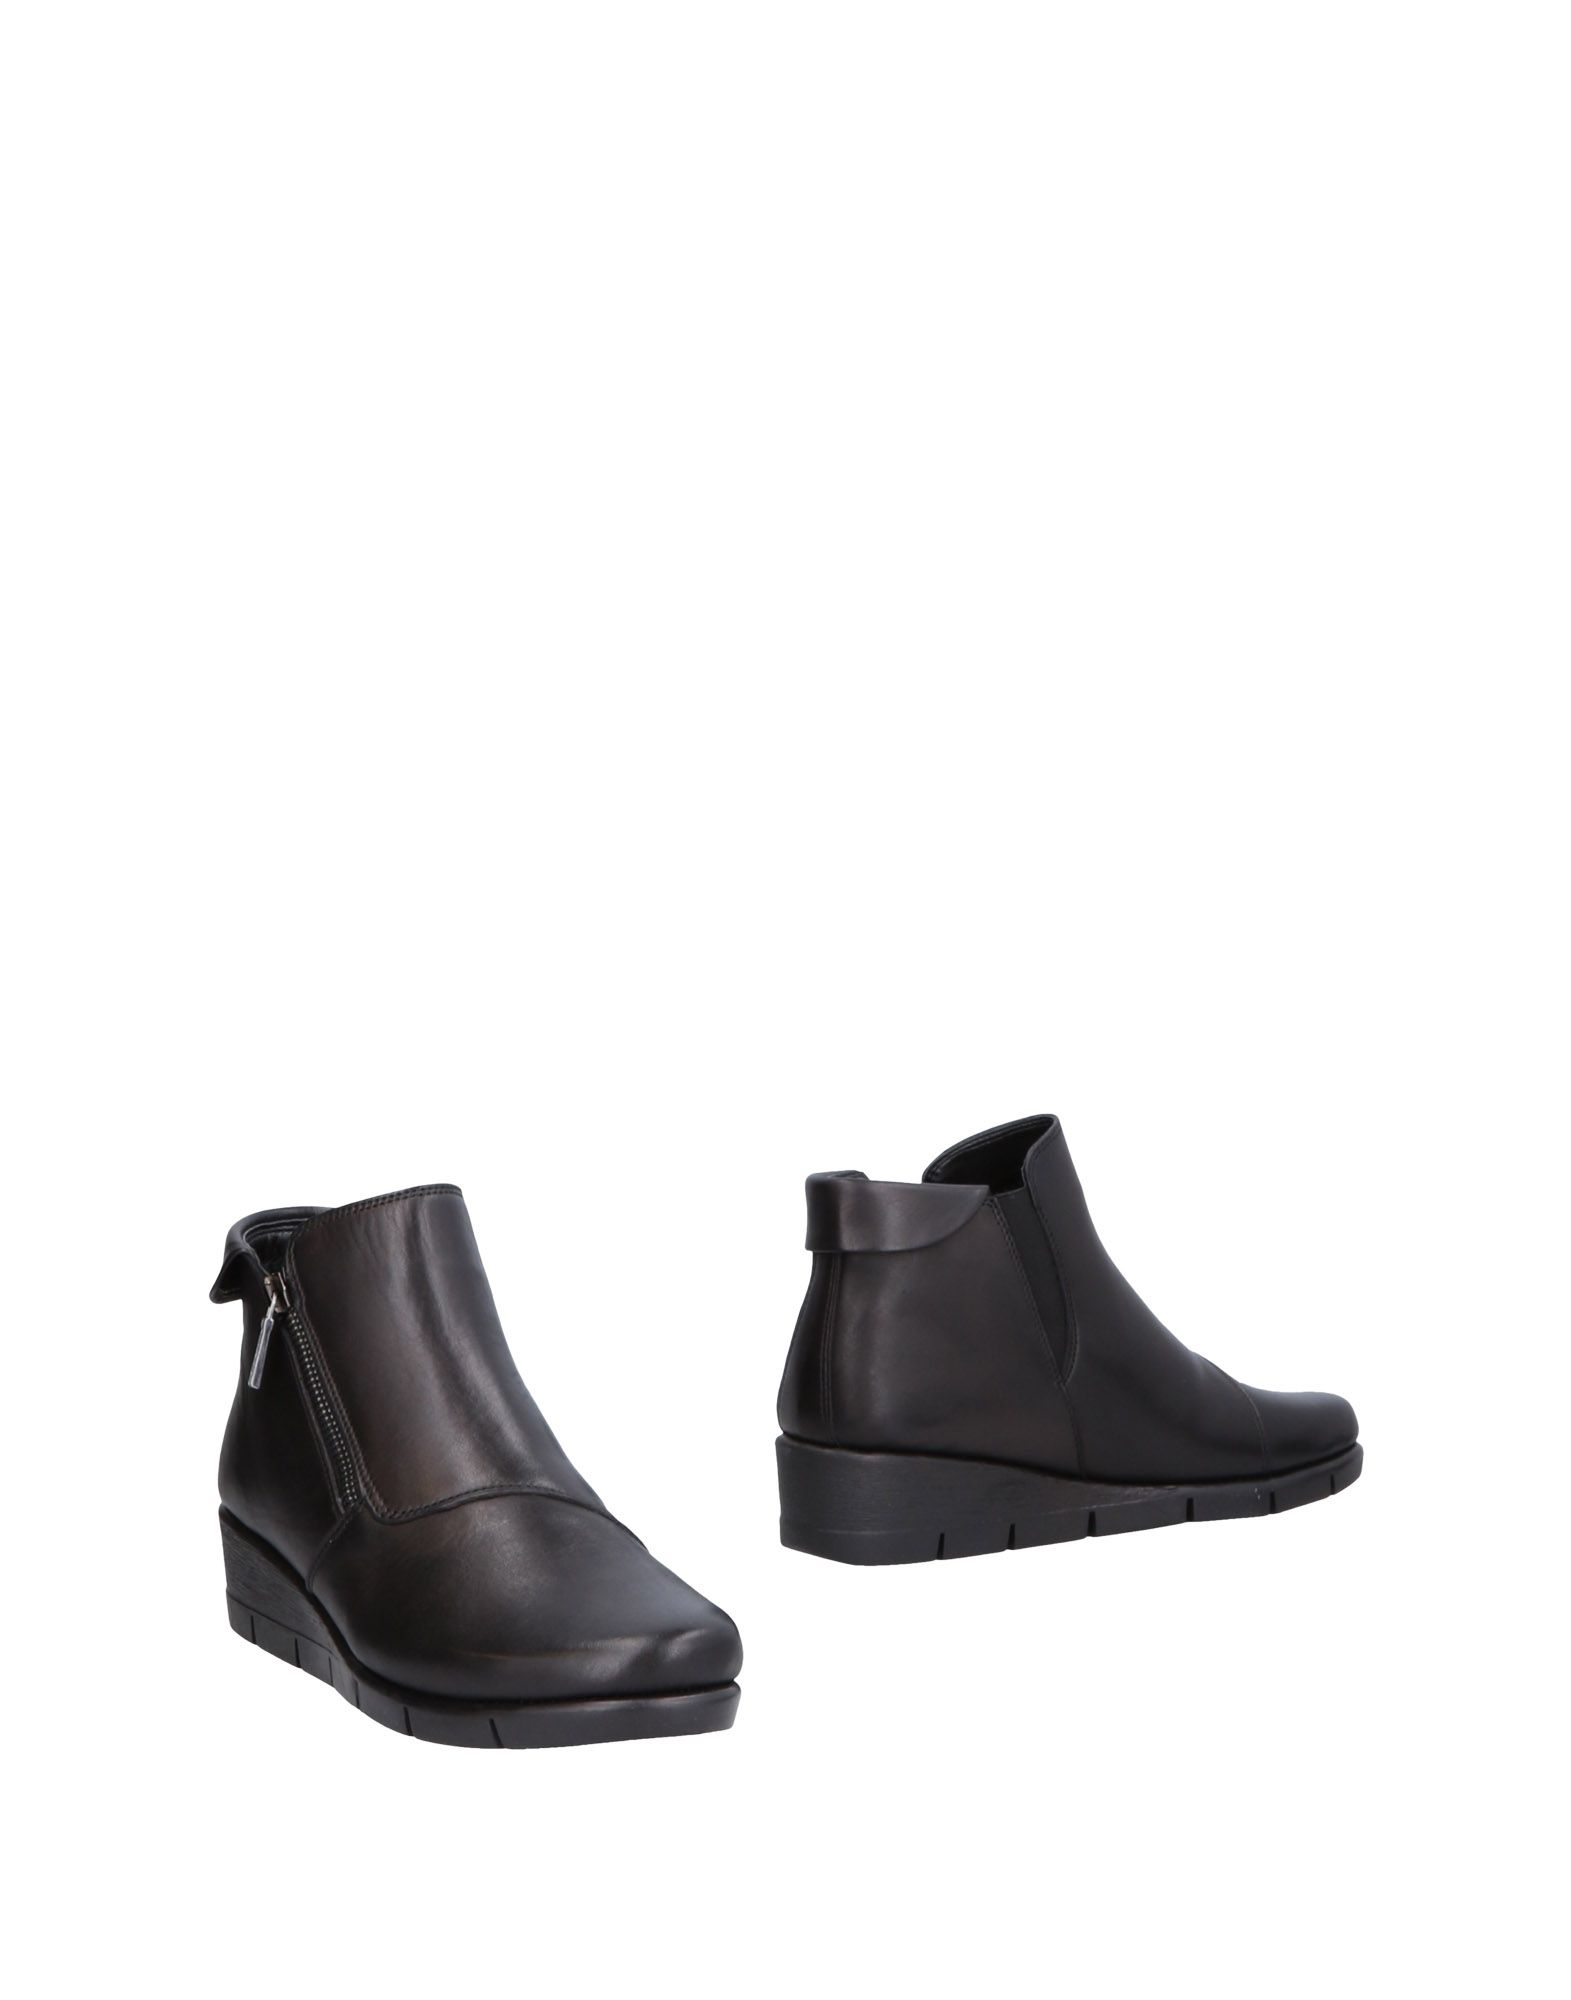 THE FLEXX Ankle boots. leather, no appliqués, solid color, zip, round toeline, wedge heel, leather lining, rubber sole, contains non-textile parts of animal origin. Soft Leather